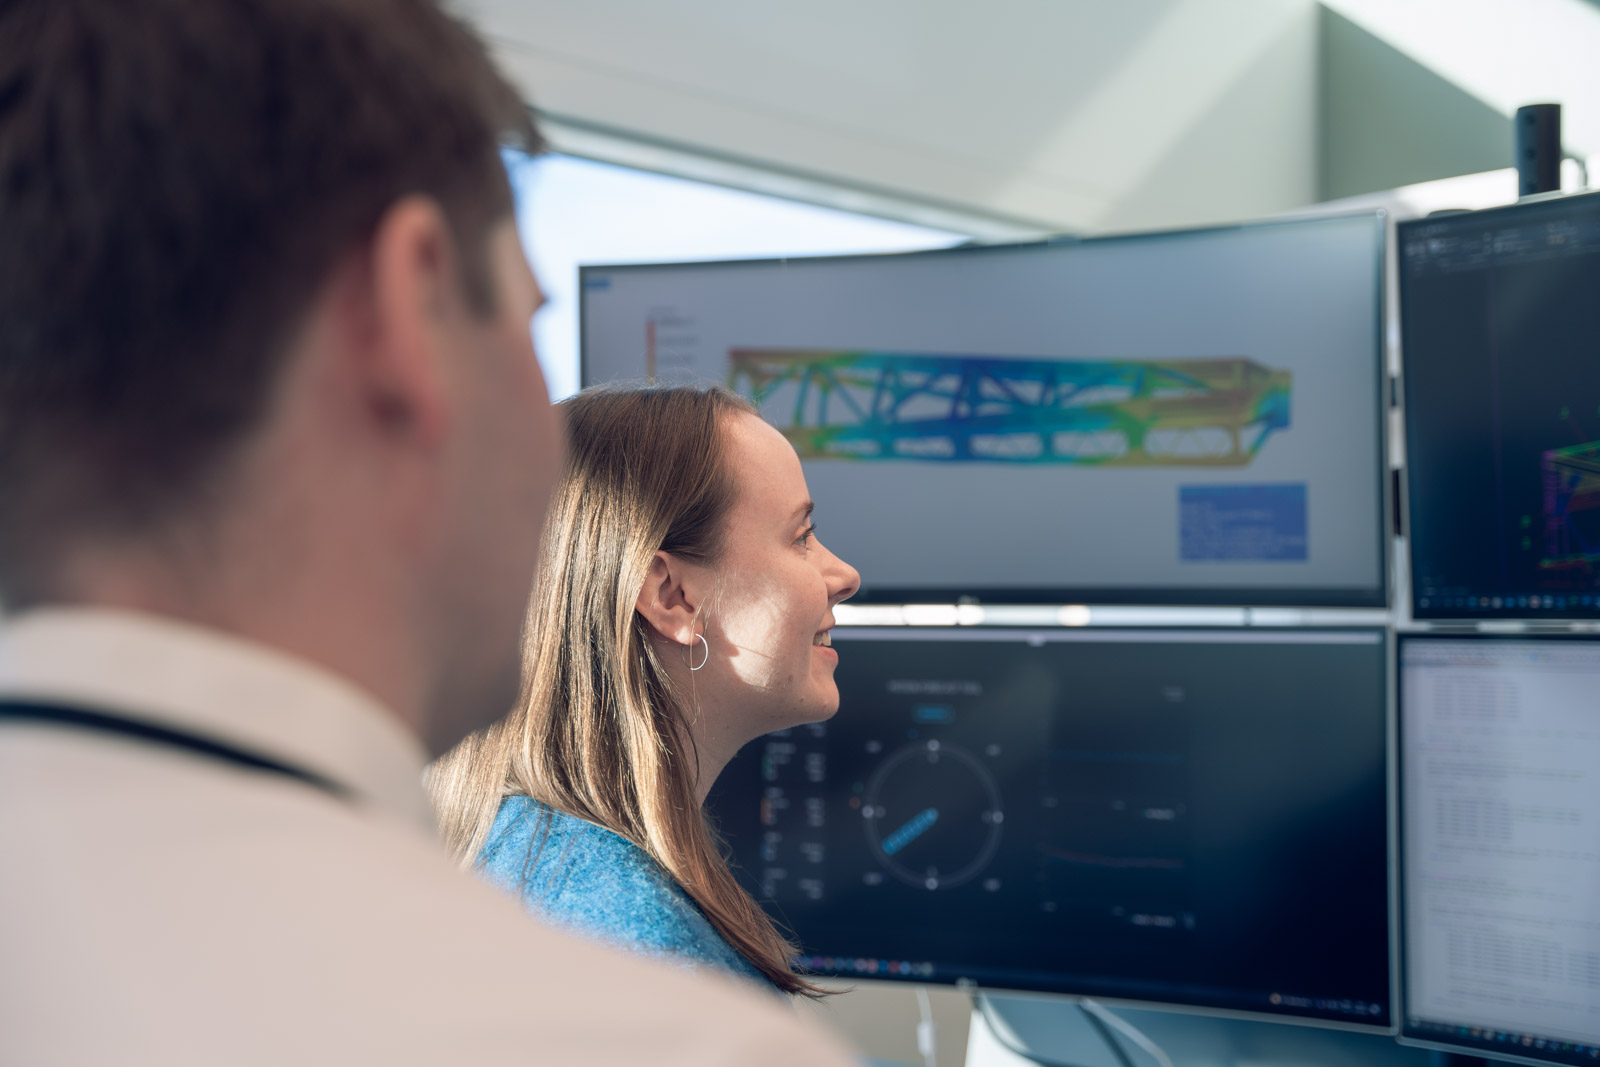 Colleagues looking at a architectural drawing on a monitor